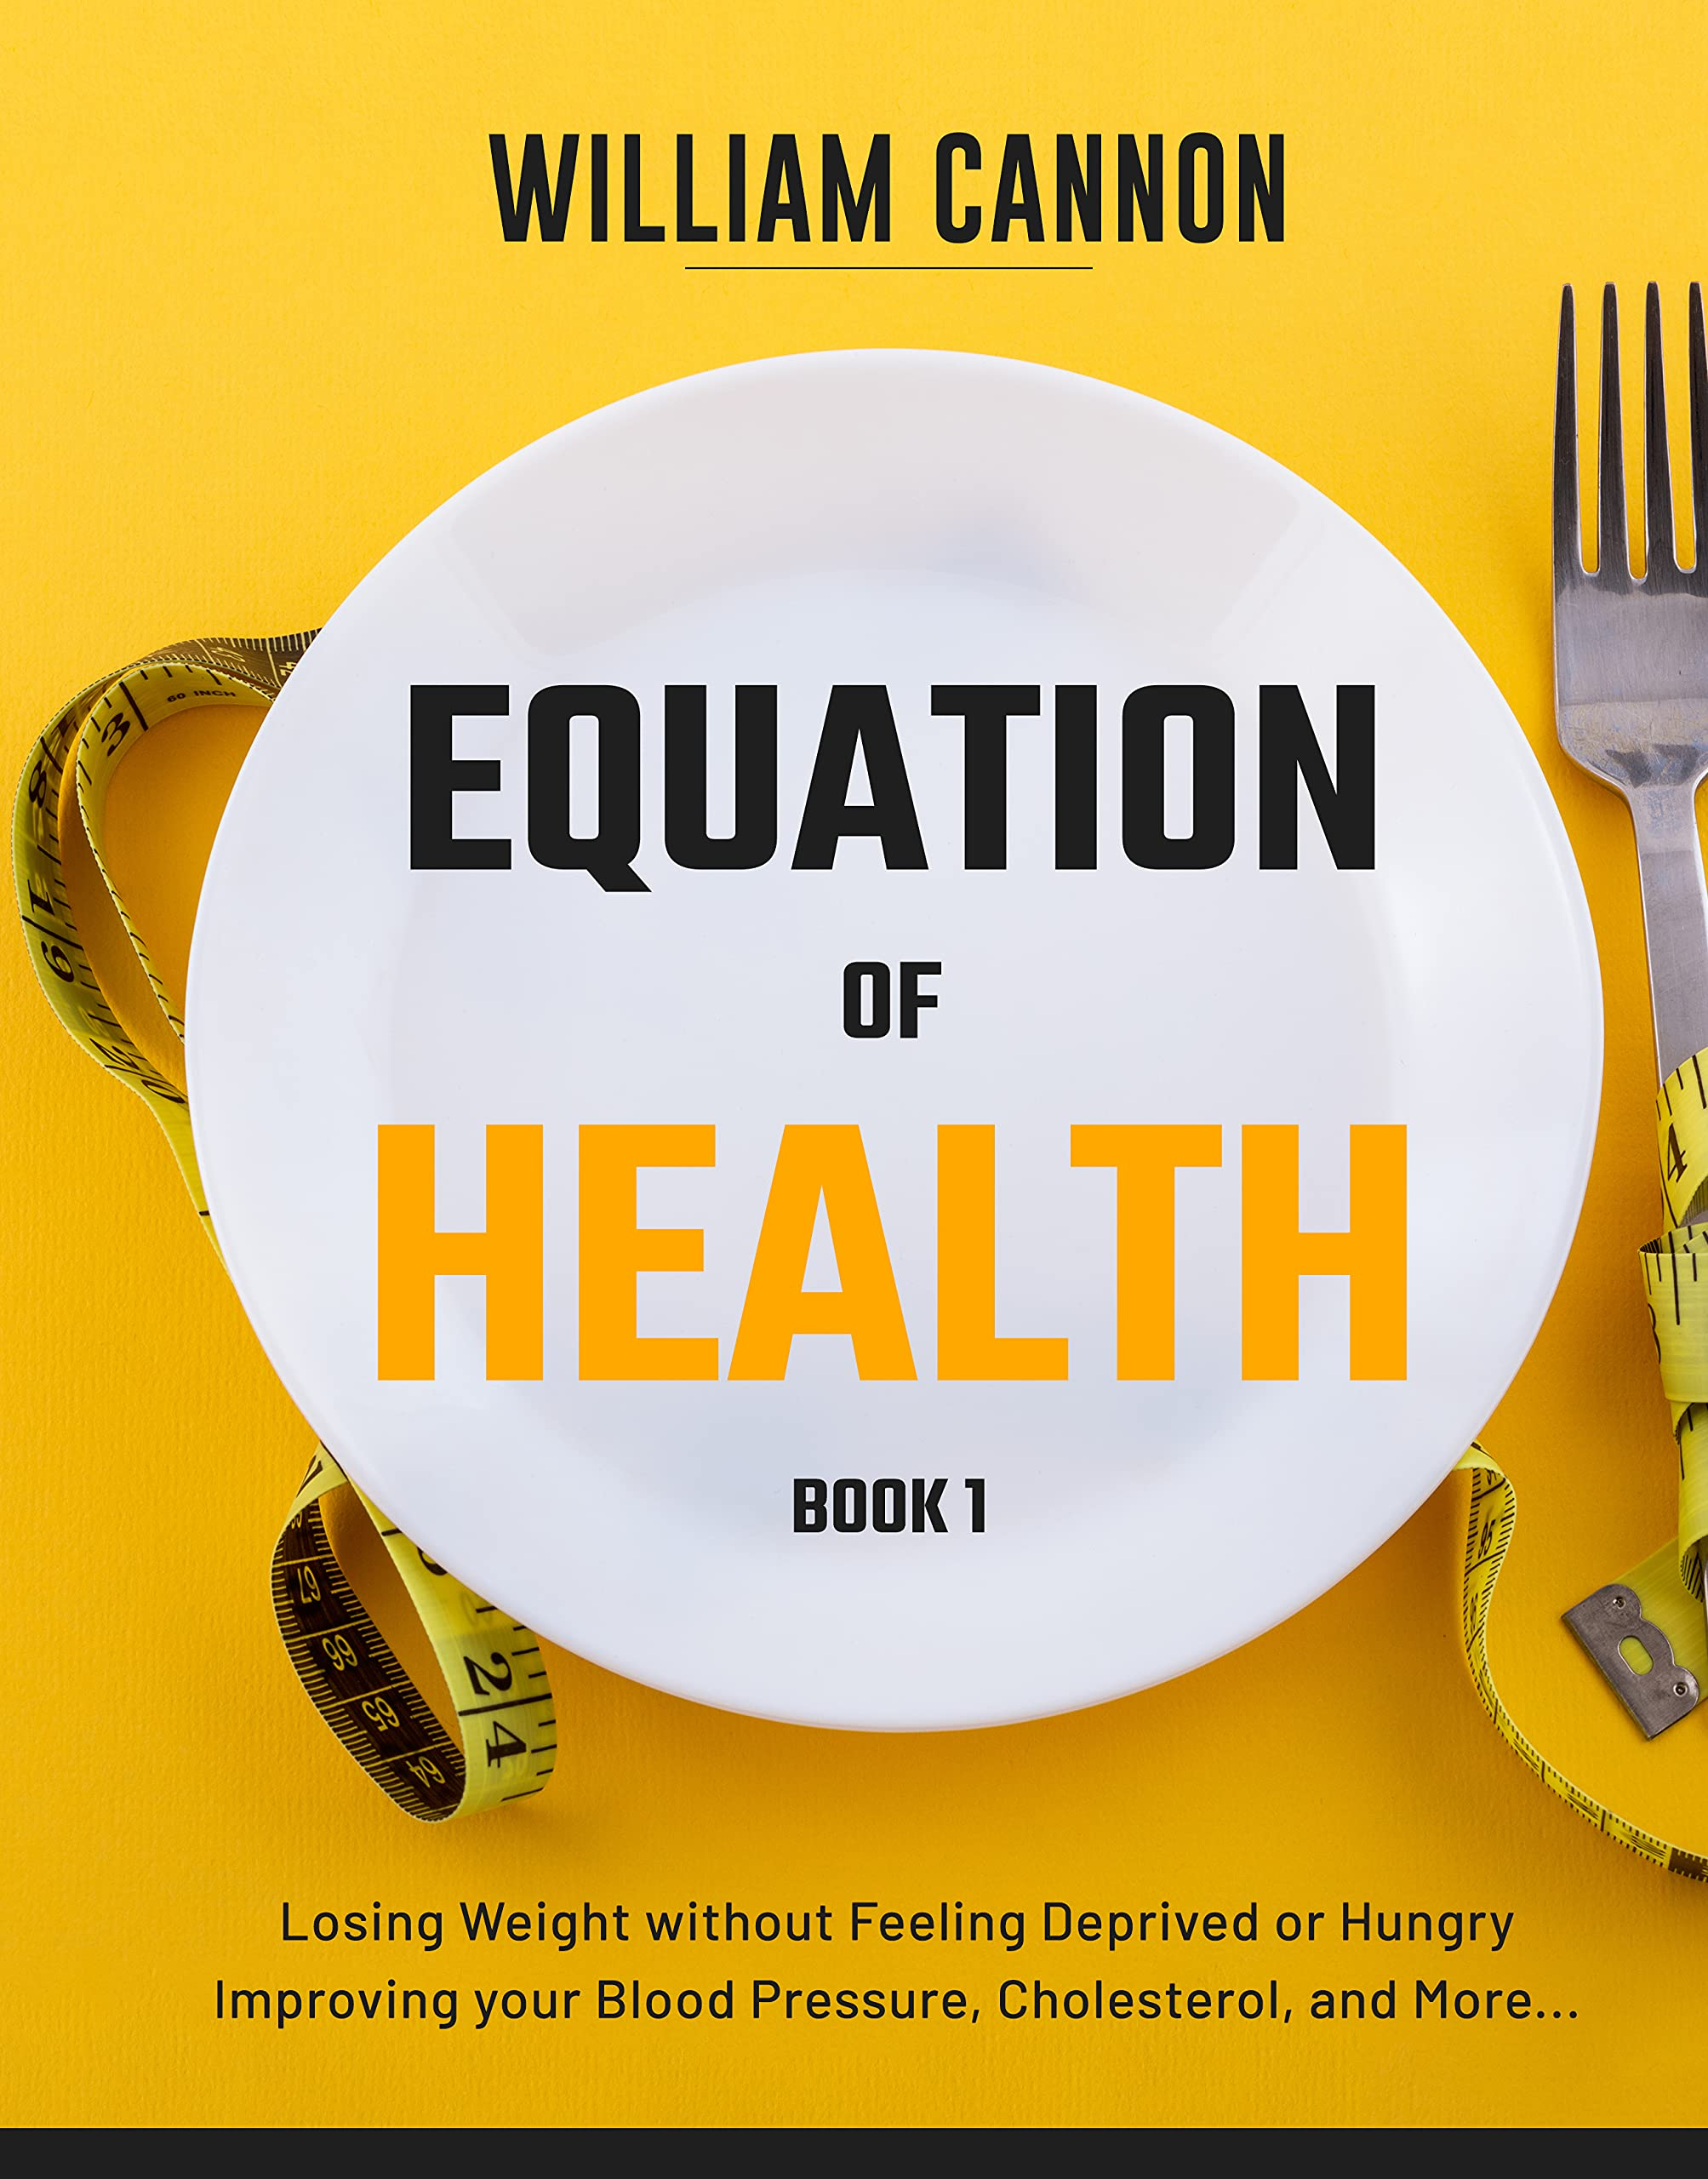 Equation of Health: Losing Weight without Feeling Deprived or Hungry   Improving your Blood Pressure, Cholesterol, and More - Book 1